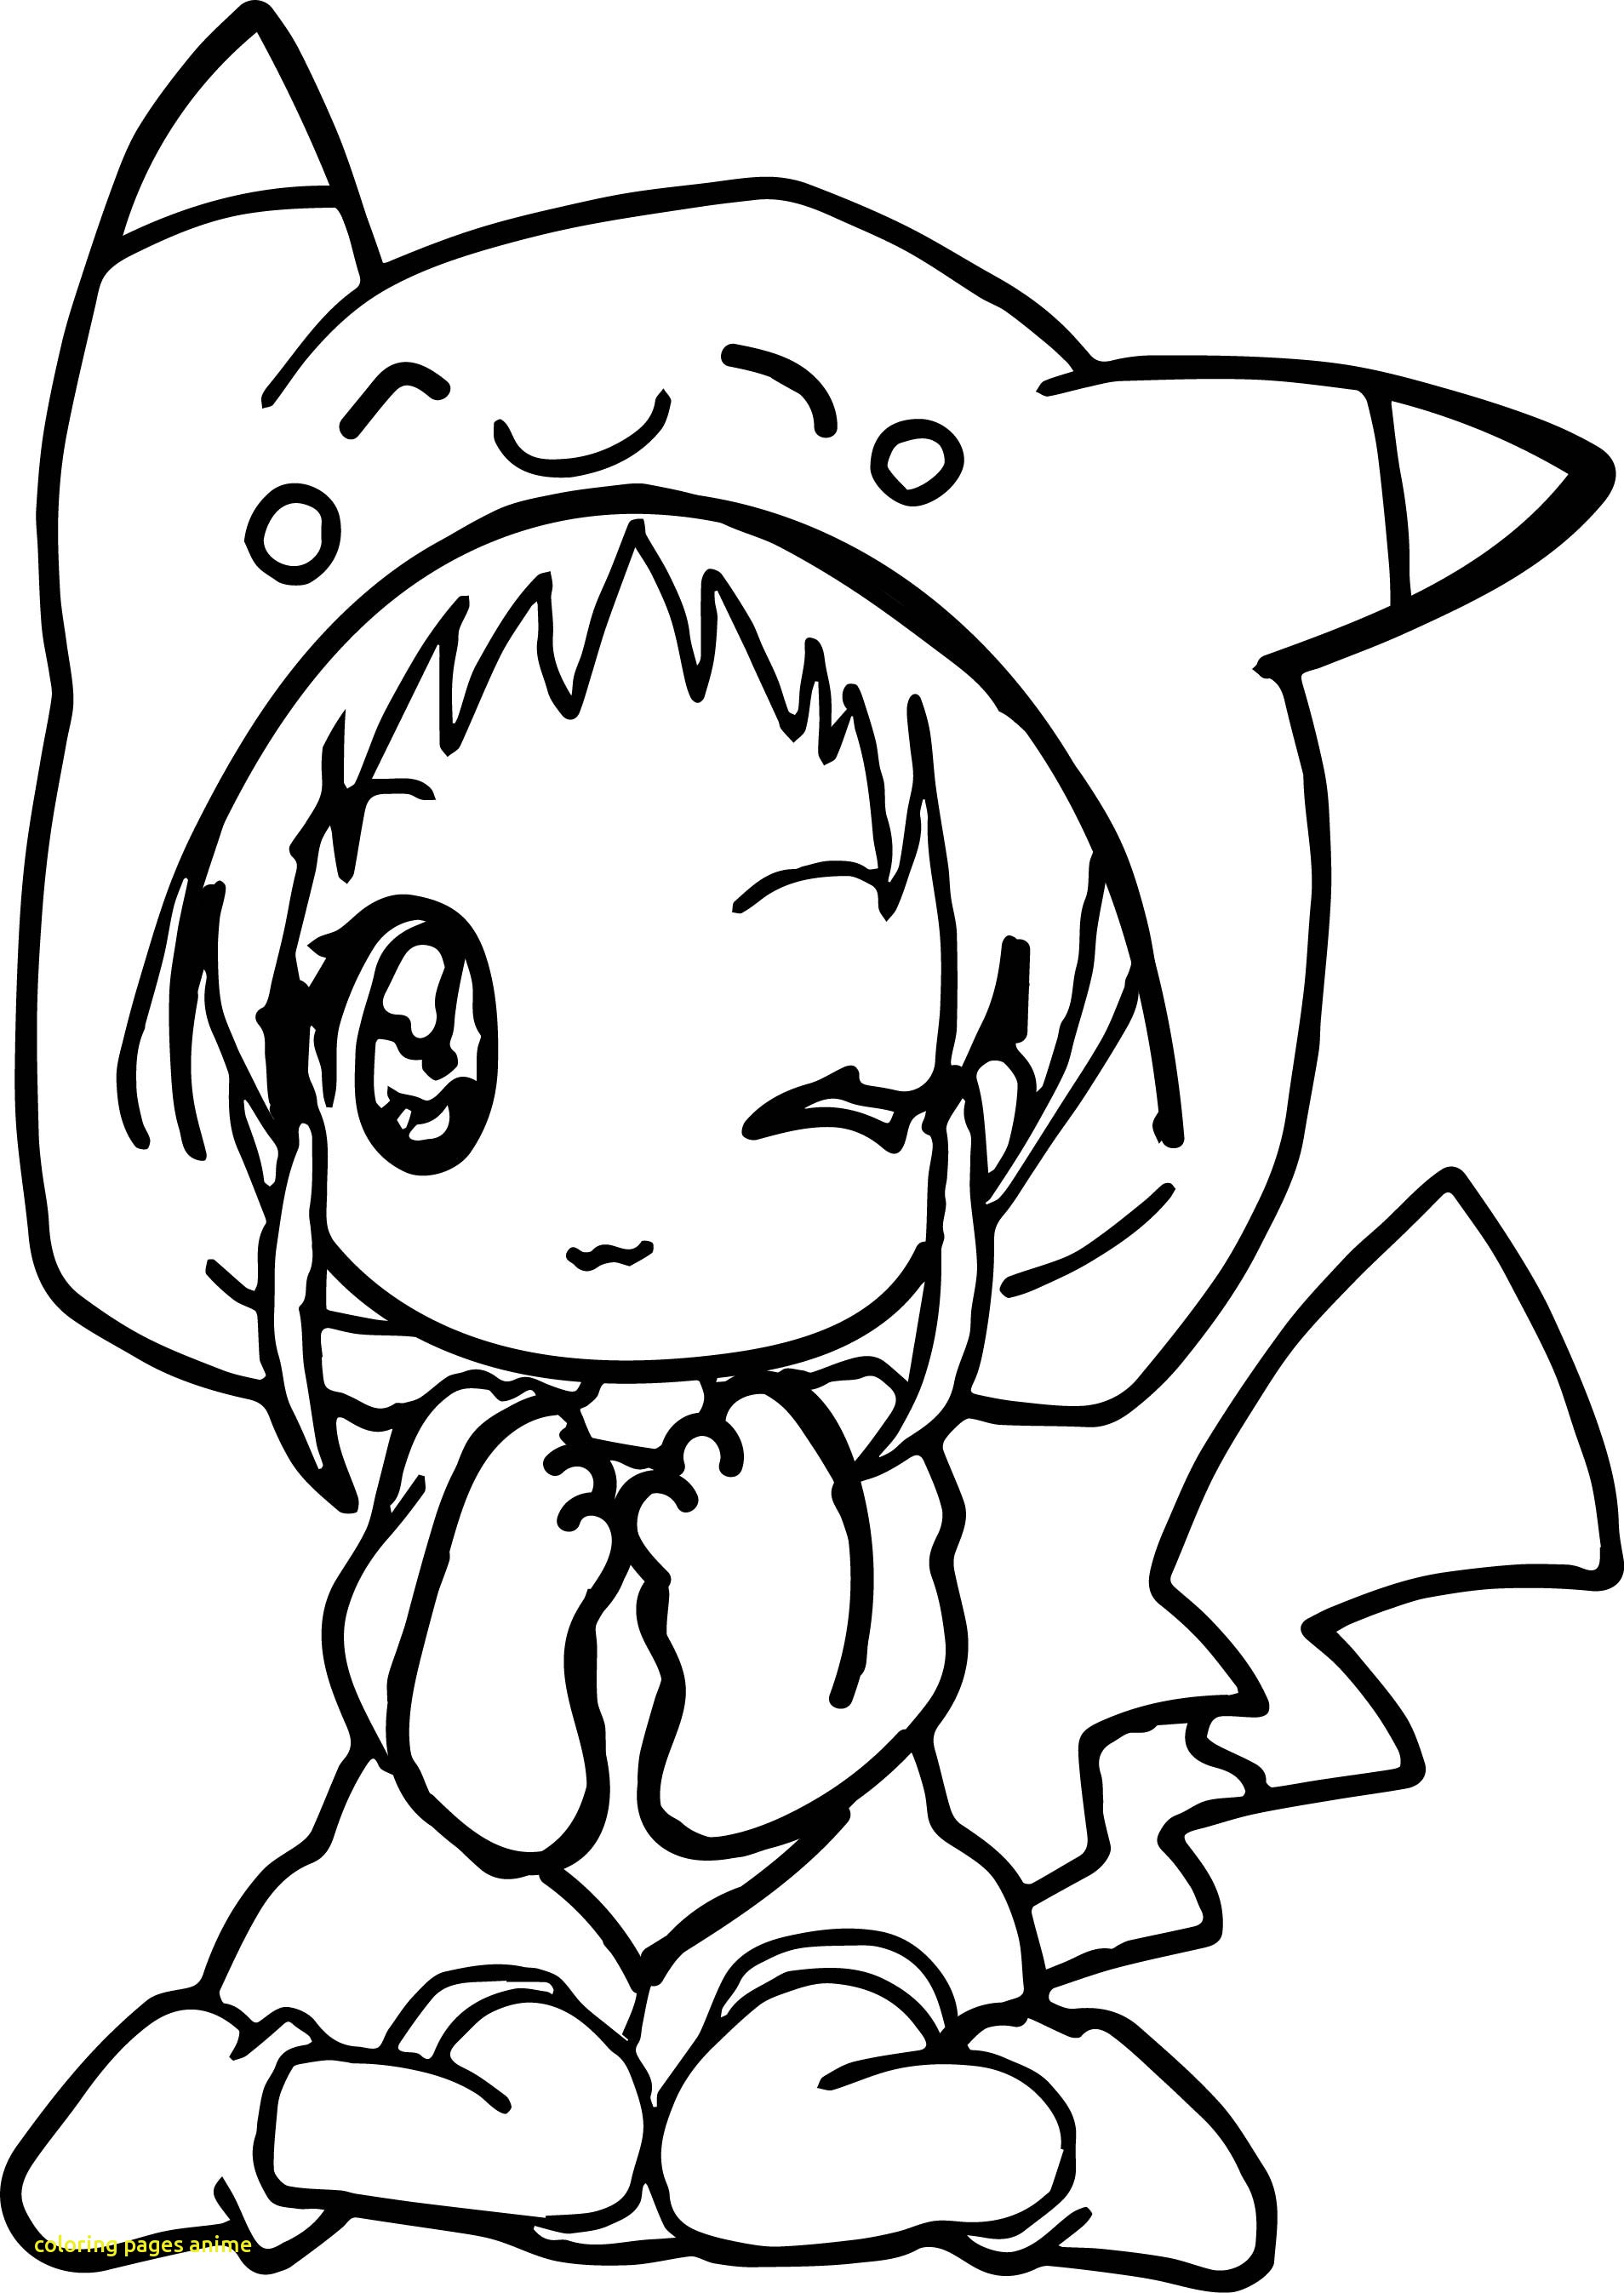 1908x2694 Coloring Pages Anime With Anime Girl Pikachu Dress Coloring Page